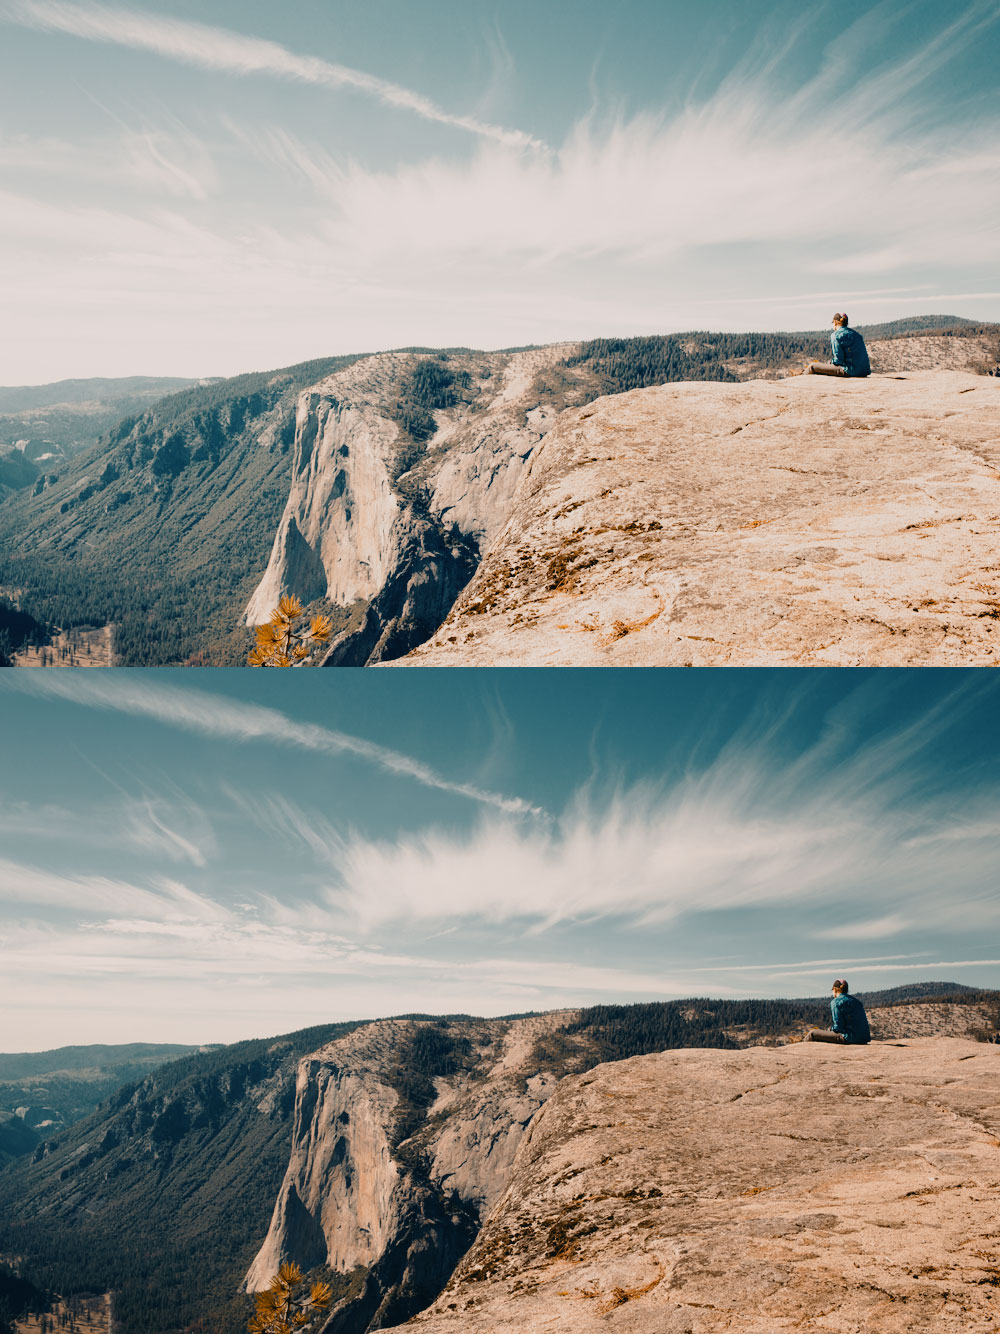 In this example we can see the same LUT applied to a properly exposed image (bottom) and over exposed image (top). As we can clearly see, over exposed image does not yield expected result.